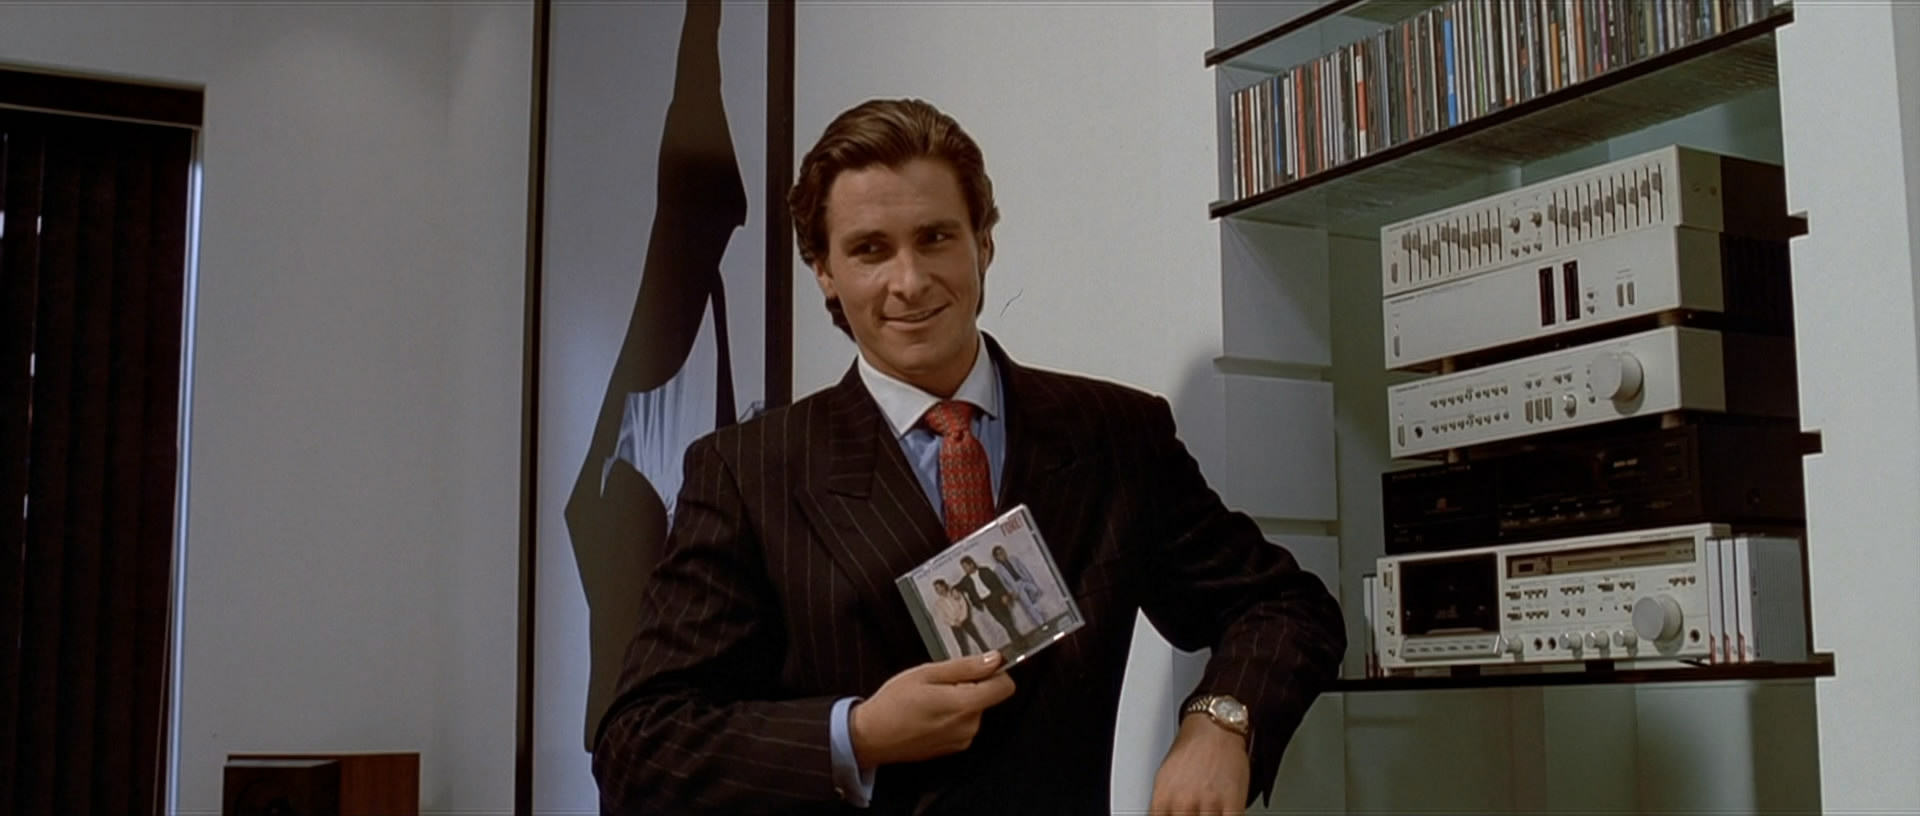 The film canon american psycho 2000 the young folks image 5 huey lewis and weird al remake american psycho reheart Gallery